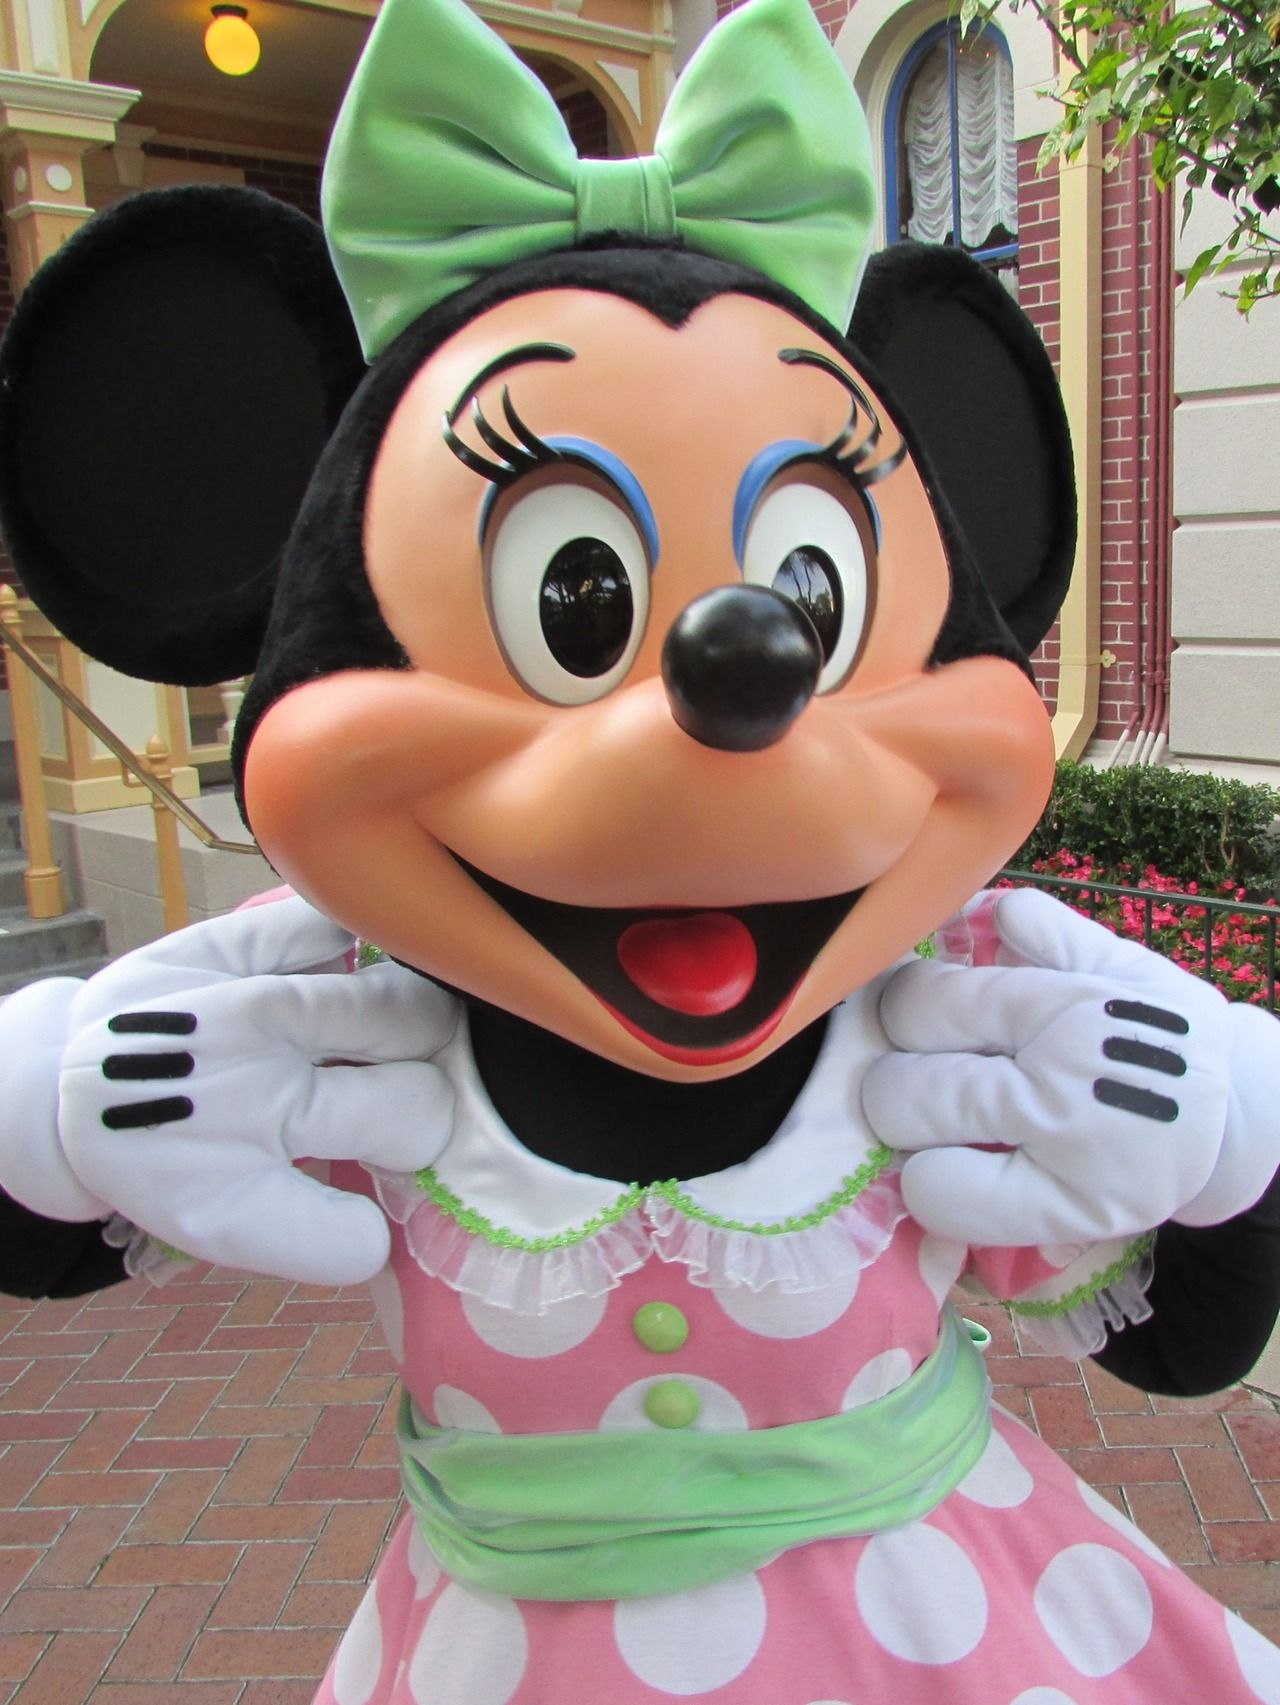 Minnie Mouse!  Oooooh I just love her to pieces!!  Soooo stinkin cute!http://mousetalestravel.com/aimee-best-quote-form/